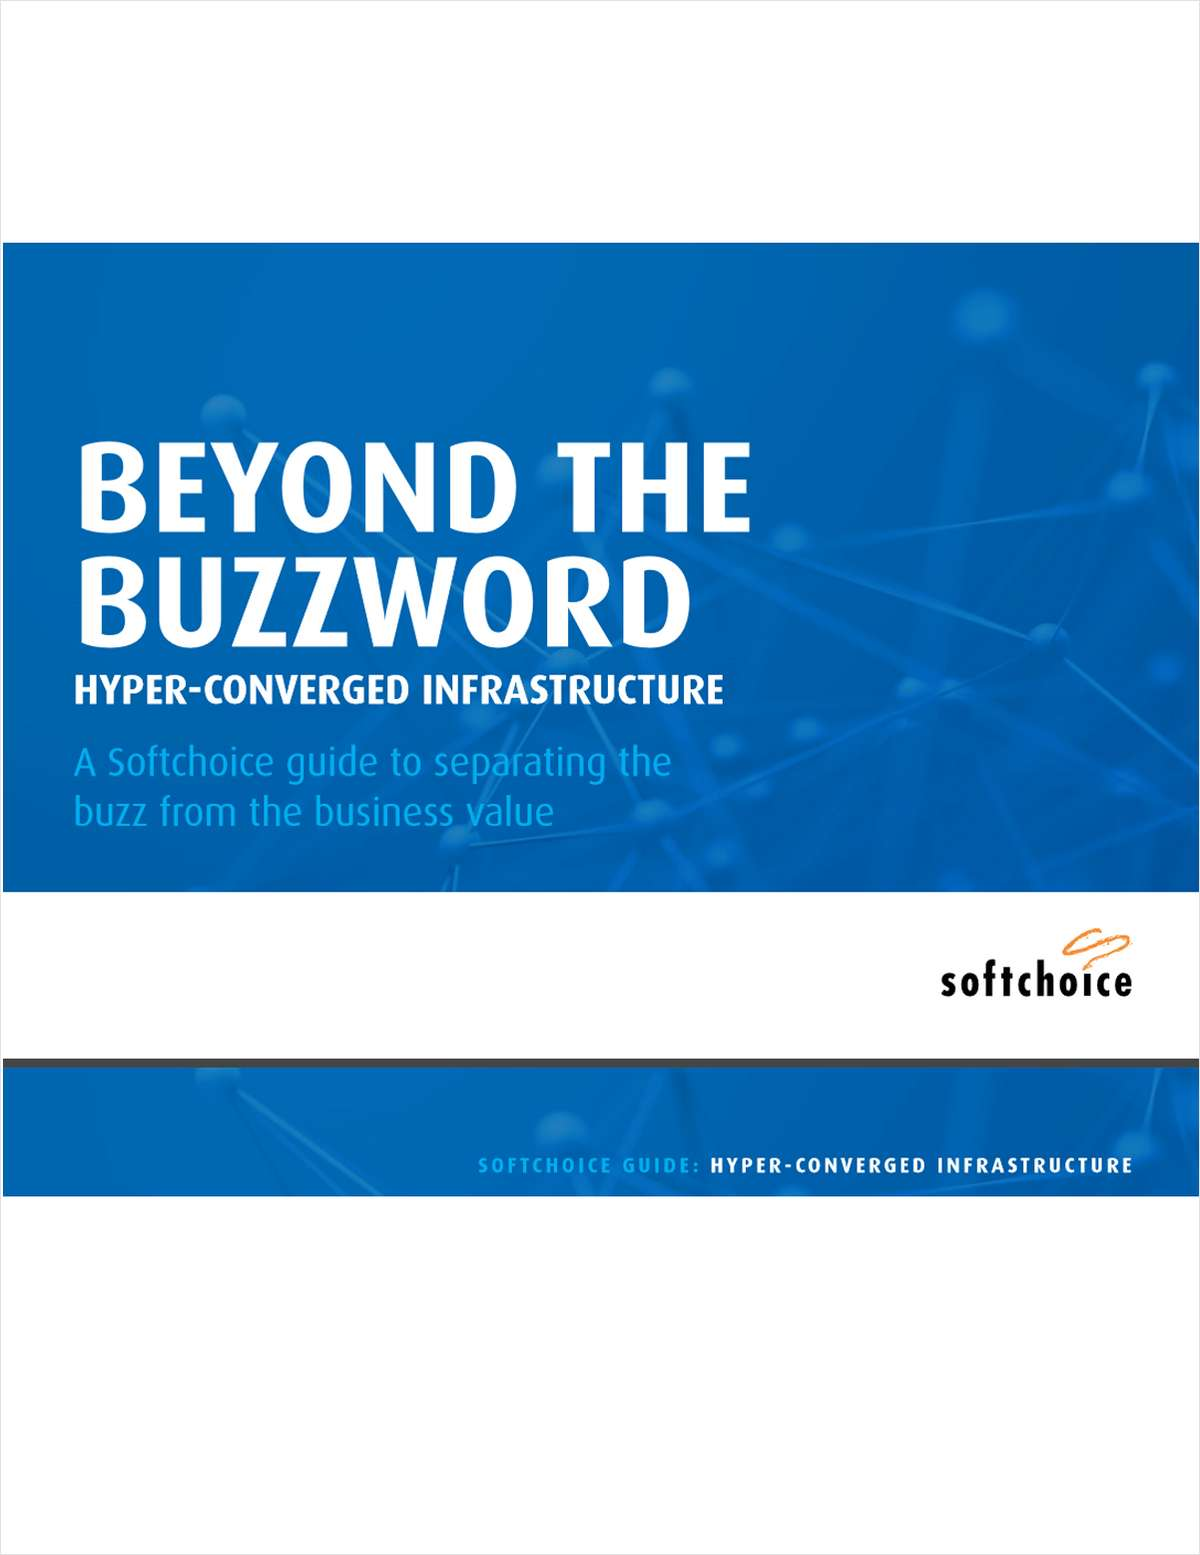 Go Beyond The Buzzword: Hyper-Converged Infrastructure